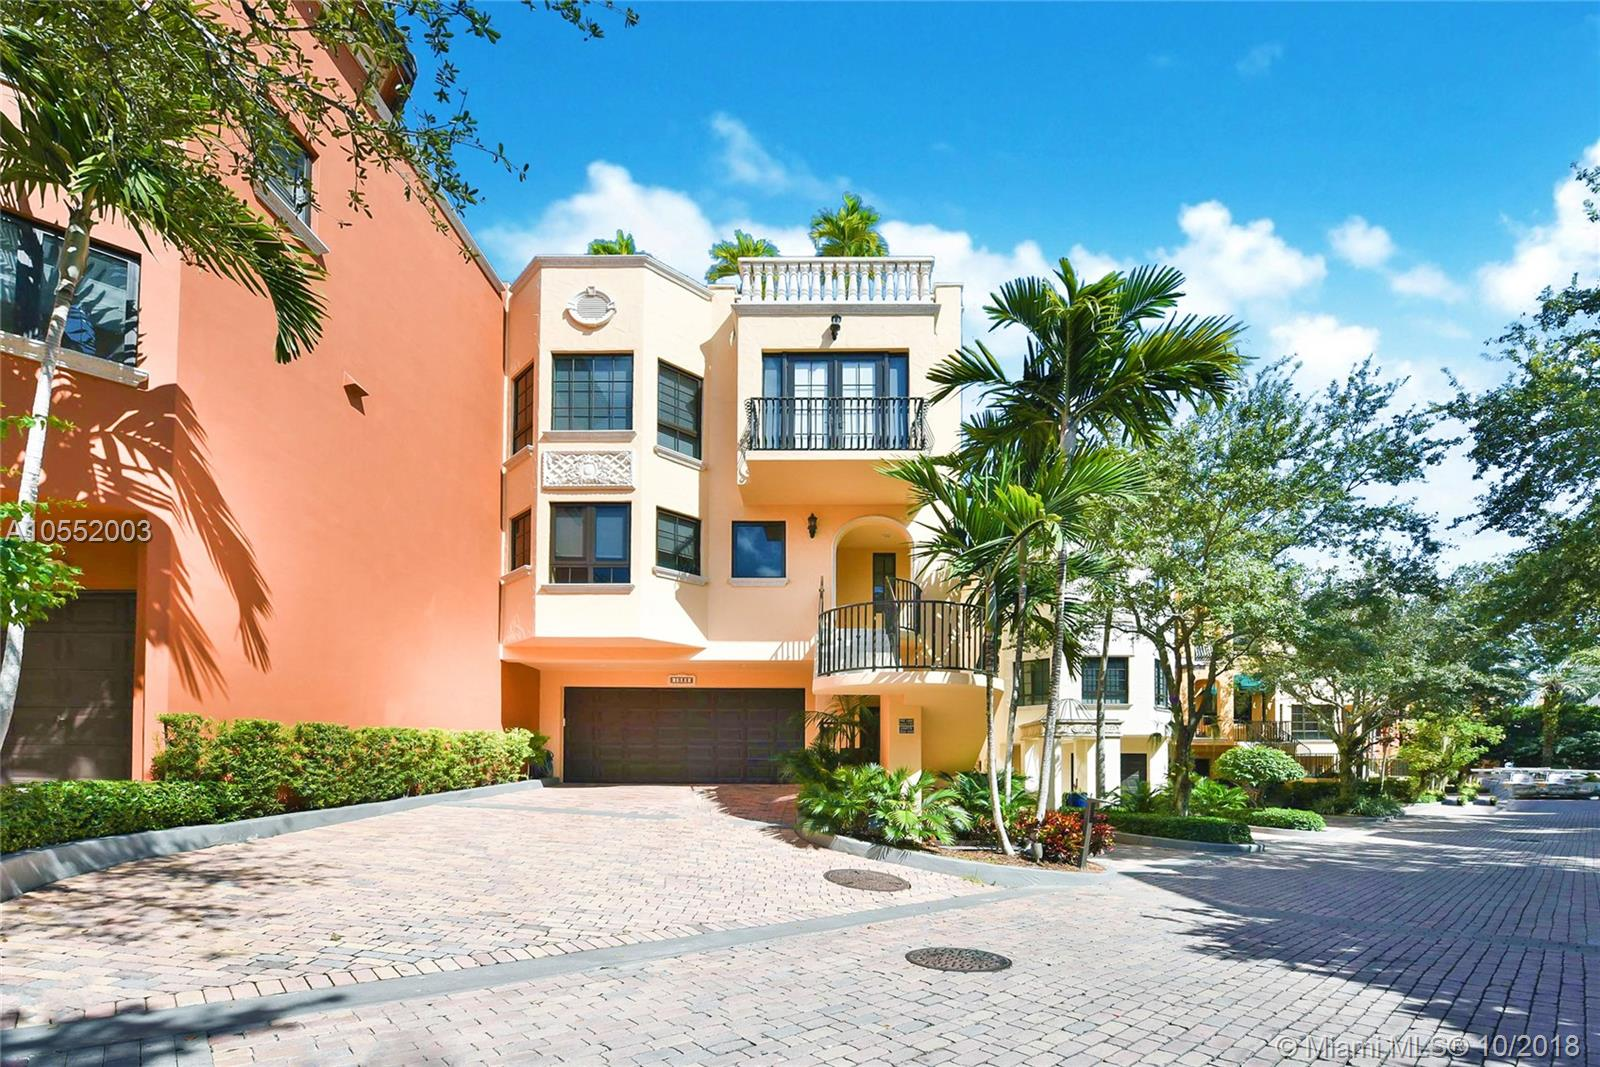 """Mediterranean-style 4-level villa overlooking Peacock Park & Biscayne Bay in the exclusive gated enclave """"Cloisters on the Bay"""" in Center Coconut Grove, just steps from shopping, restaurants, parks & marinas. This home features a private elevator, hurricane-impact windows, travertine flooring & 2-car attached garage. Main Level offers family room, ample storage & covered patio. 2nd Level boasts eat-in kitchen w/professional gas range & walk-in pantry, dining room, powder room, office, great room w/custom bar & terrace. 3rd Level offers 3 bedrooms w/ensuite bathrooms & laundry room. 4th Level offers expansive rooftop terrace w/hot tub & covered dining boasting bay, park & skyline views. Private amenities include club house, tennis court, pool & bay access for watersports. NOT IN FLOOD ZONE."""